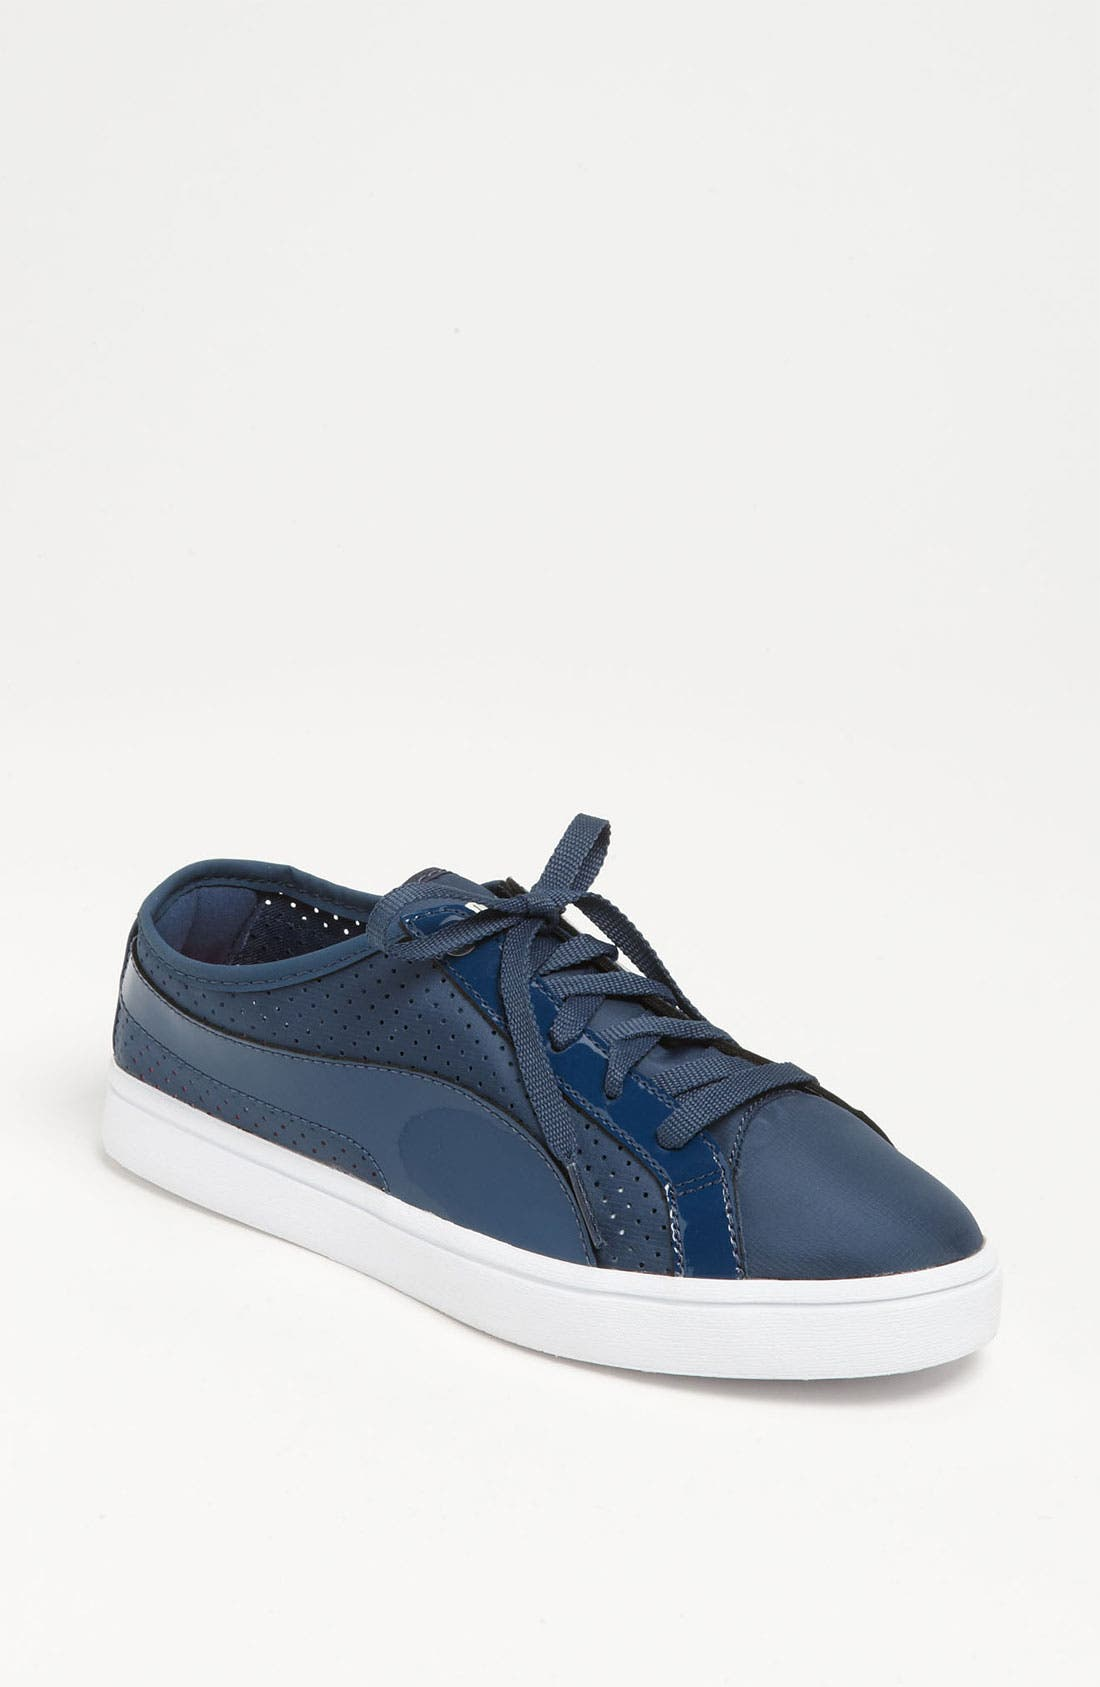 Alternate Image 1 Selected - PUMA 'Kai Lo' Sneaker (Women)